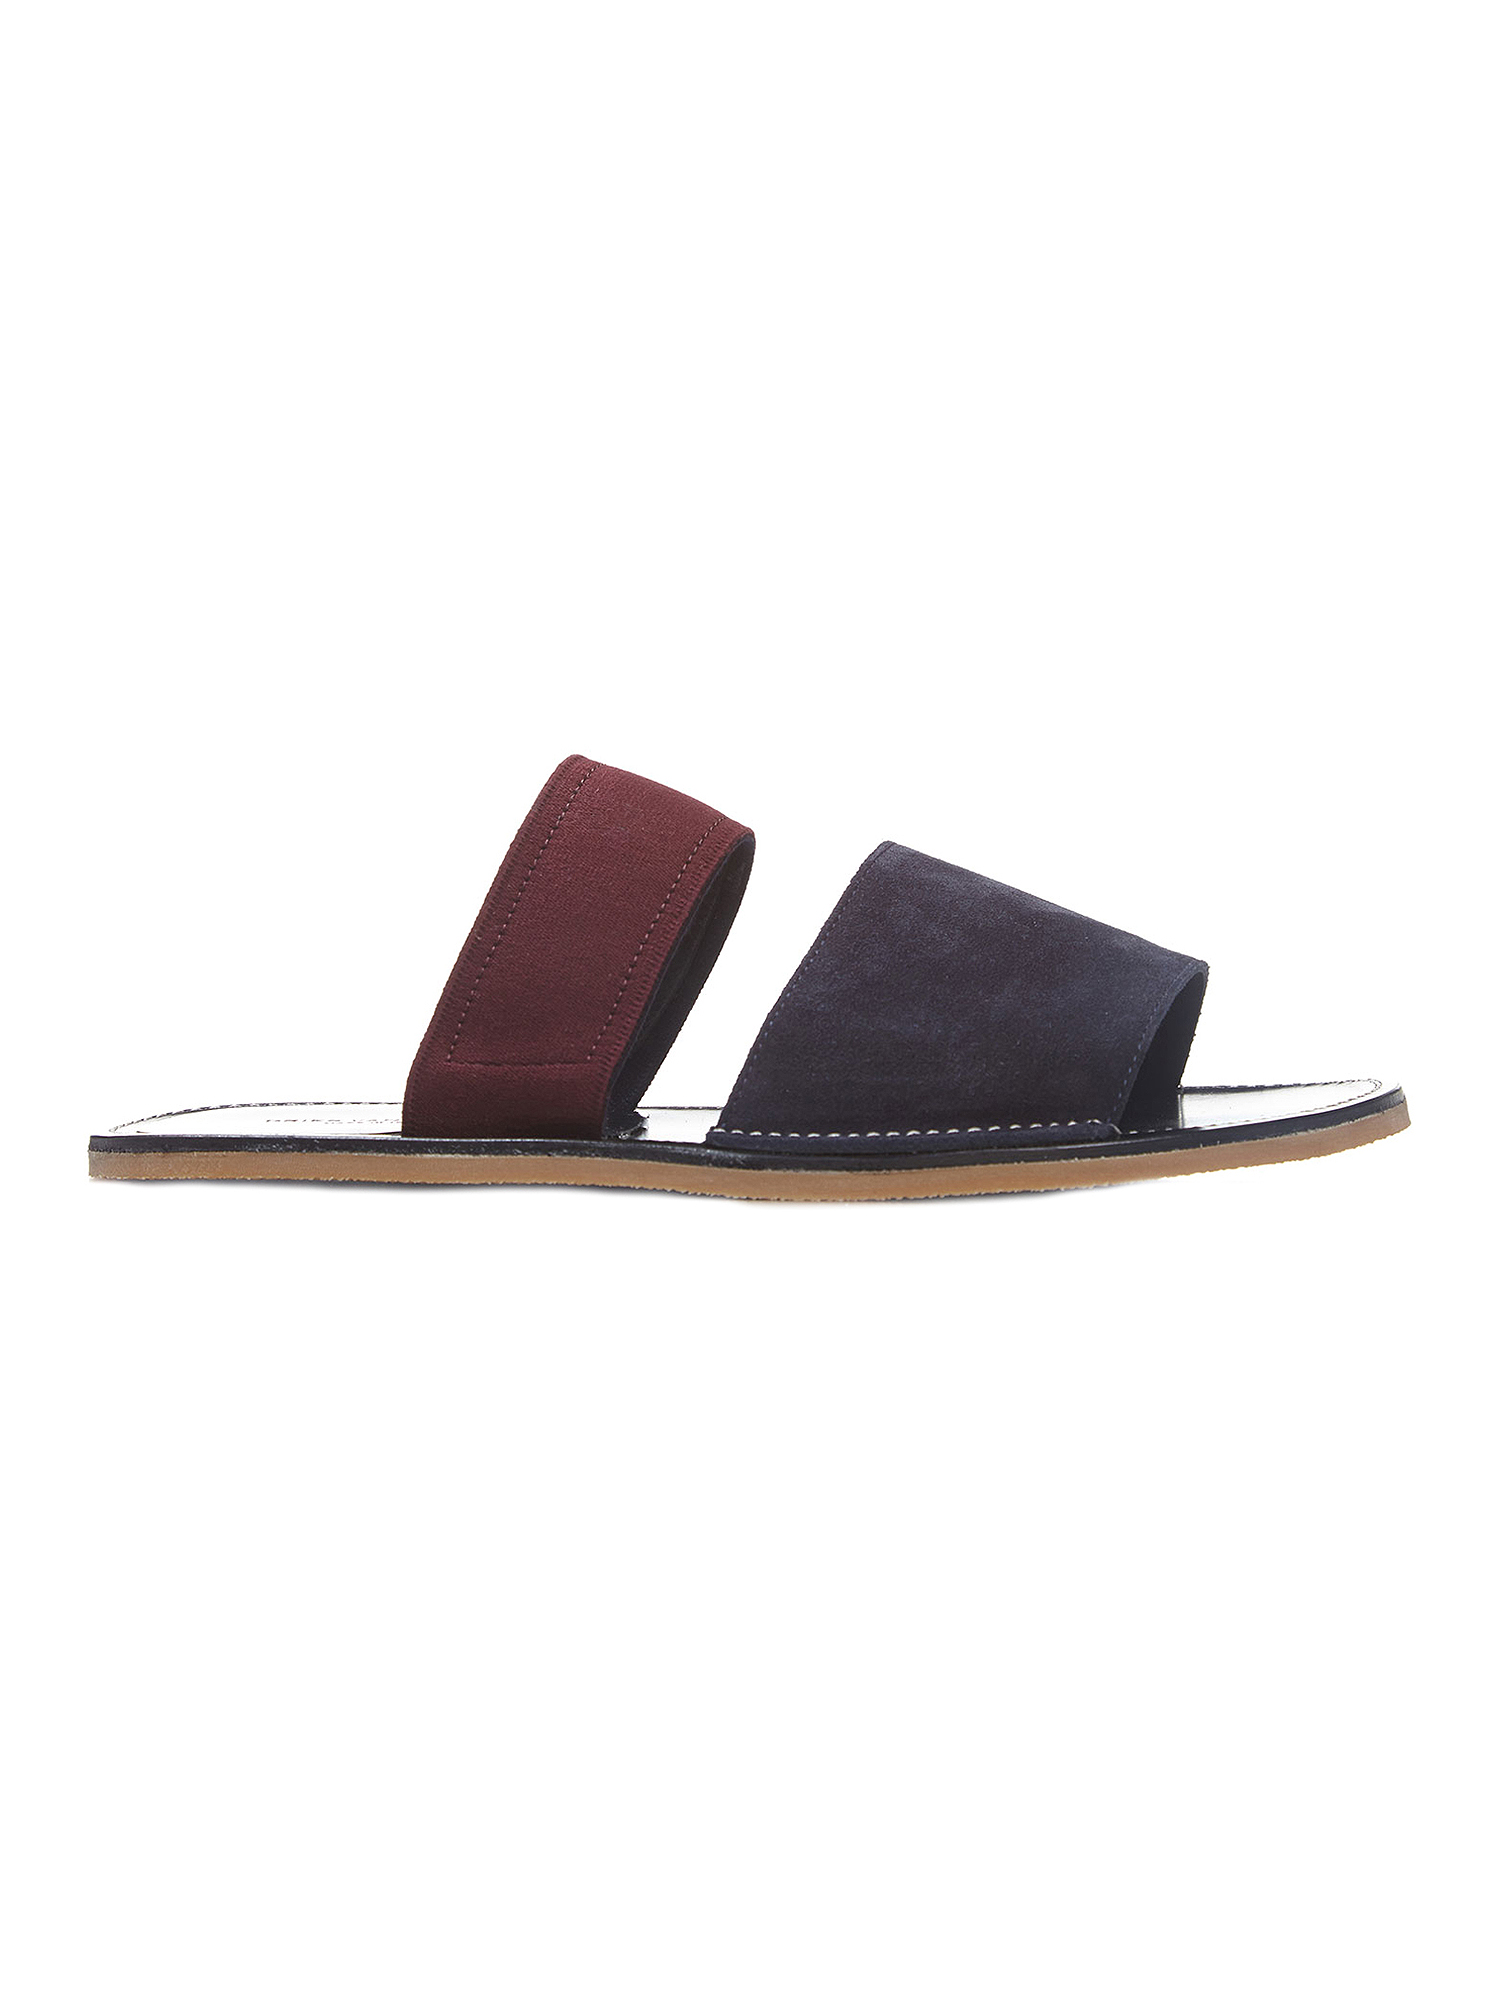 Dries Van Noten Men's Sandals MS19/926-509 Navy